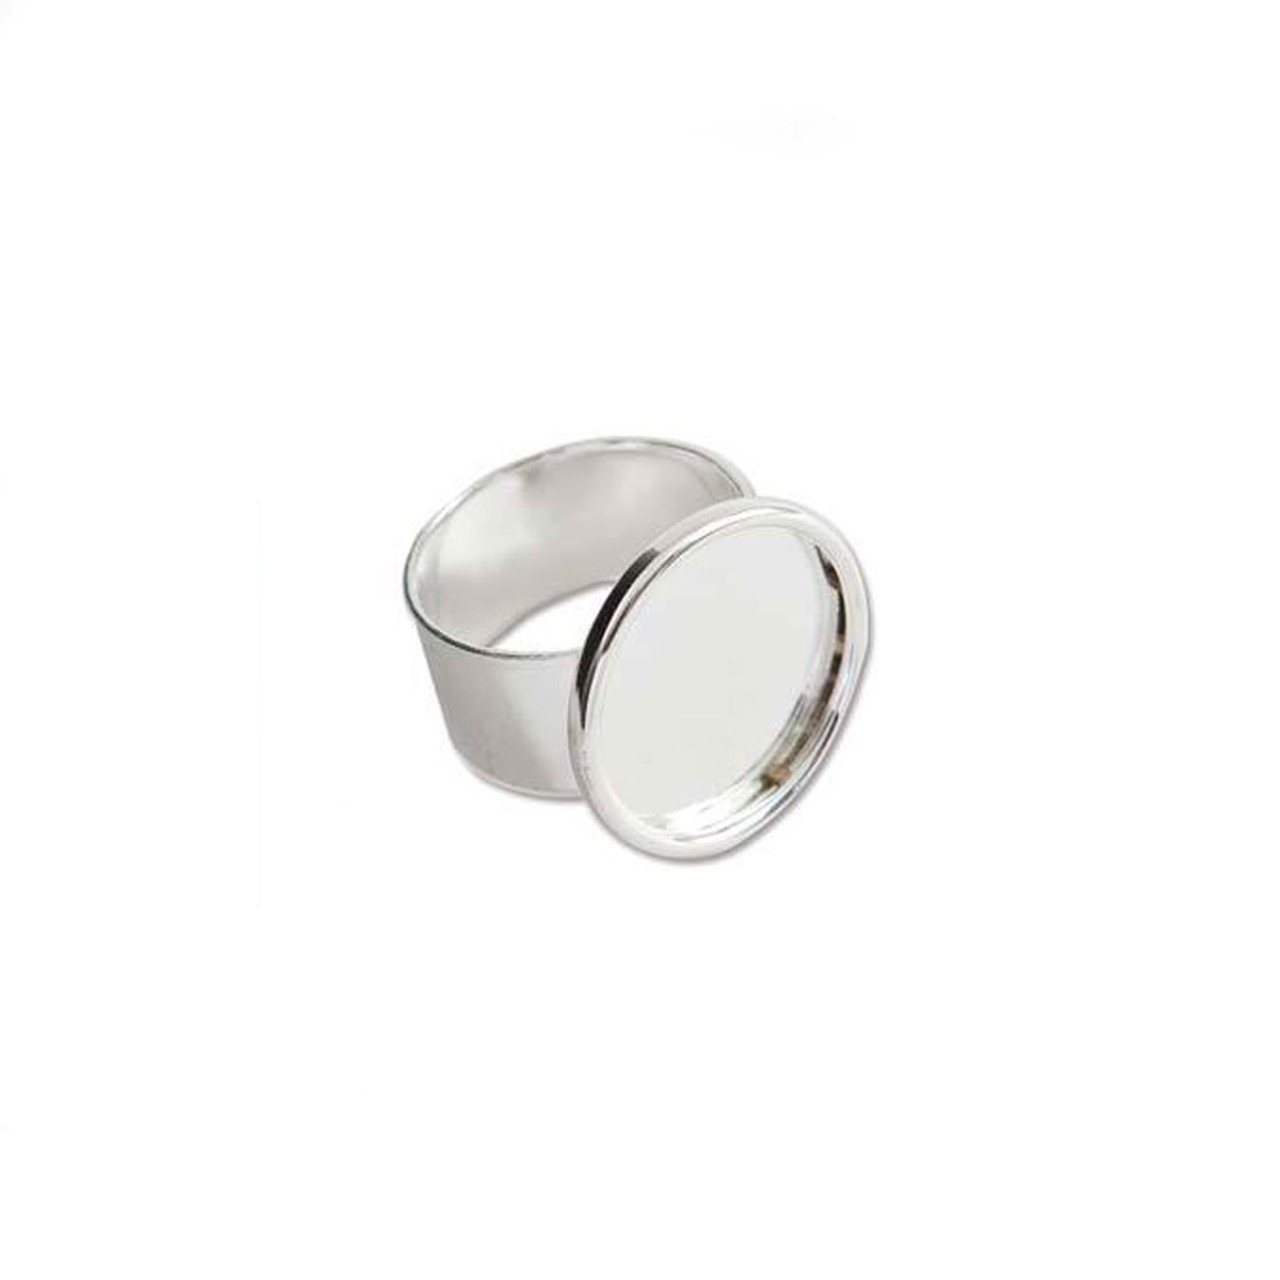 Bezel Ring With Adjustable Band - Circle Bright Silver - 18mm